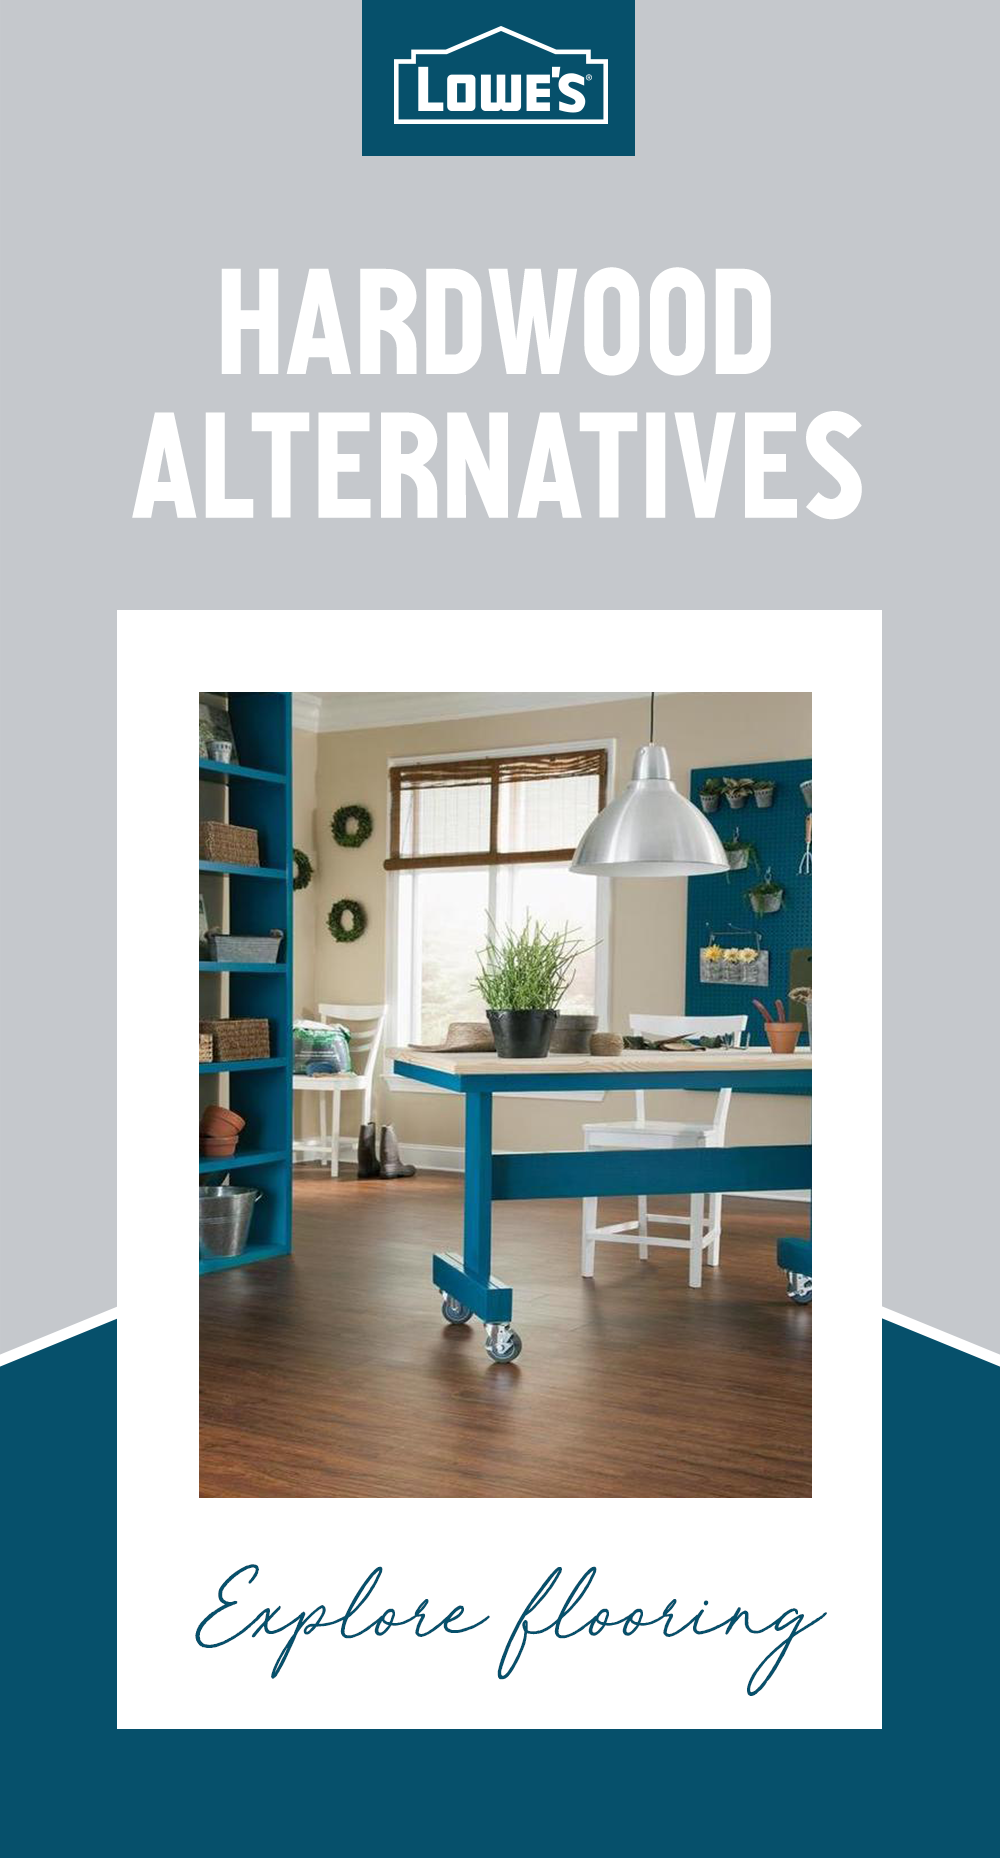 Replace Your Carpet On A Budget With Vinyl Flooring Options From Stainmaster Available At Lowe S These Easy To Flooring Hardwood Alternative Flooring Options